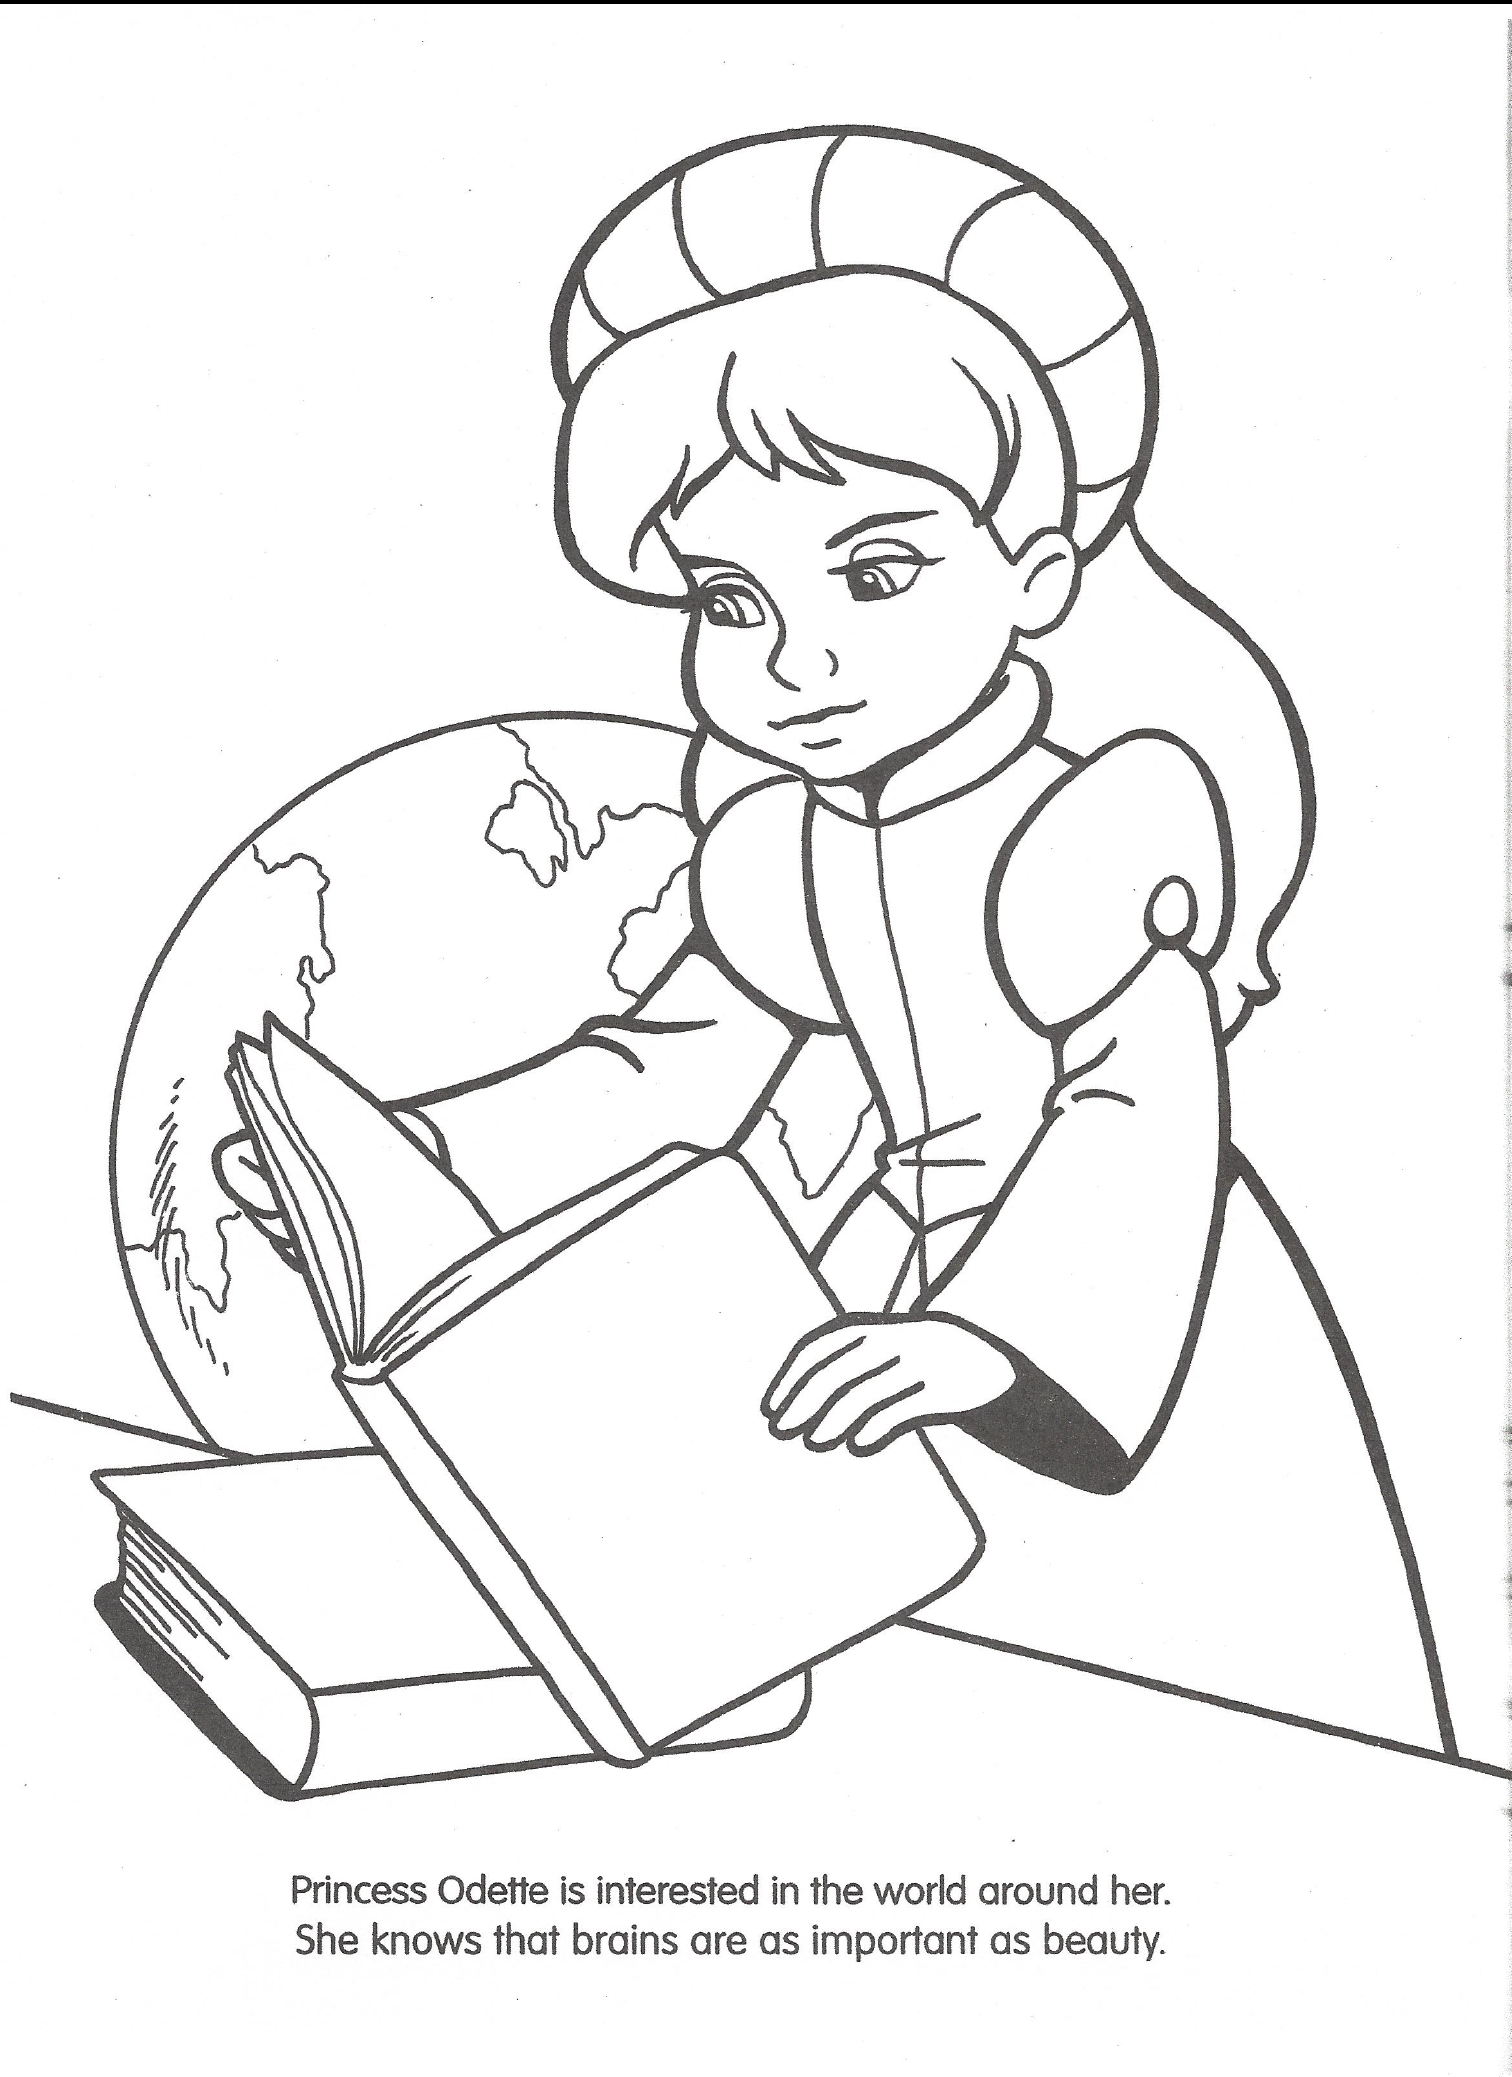 Swan princess coloring pages free - Image Swan Princess Official Coloring Page 7 Png The Swan Princess Wiki Fandom Powered By Wikia